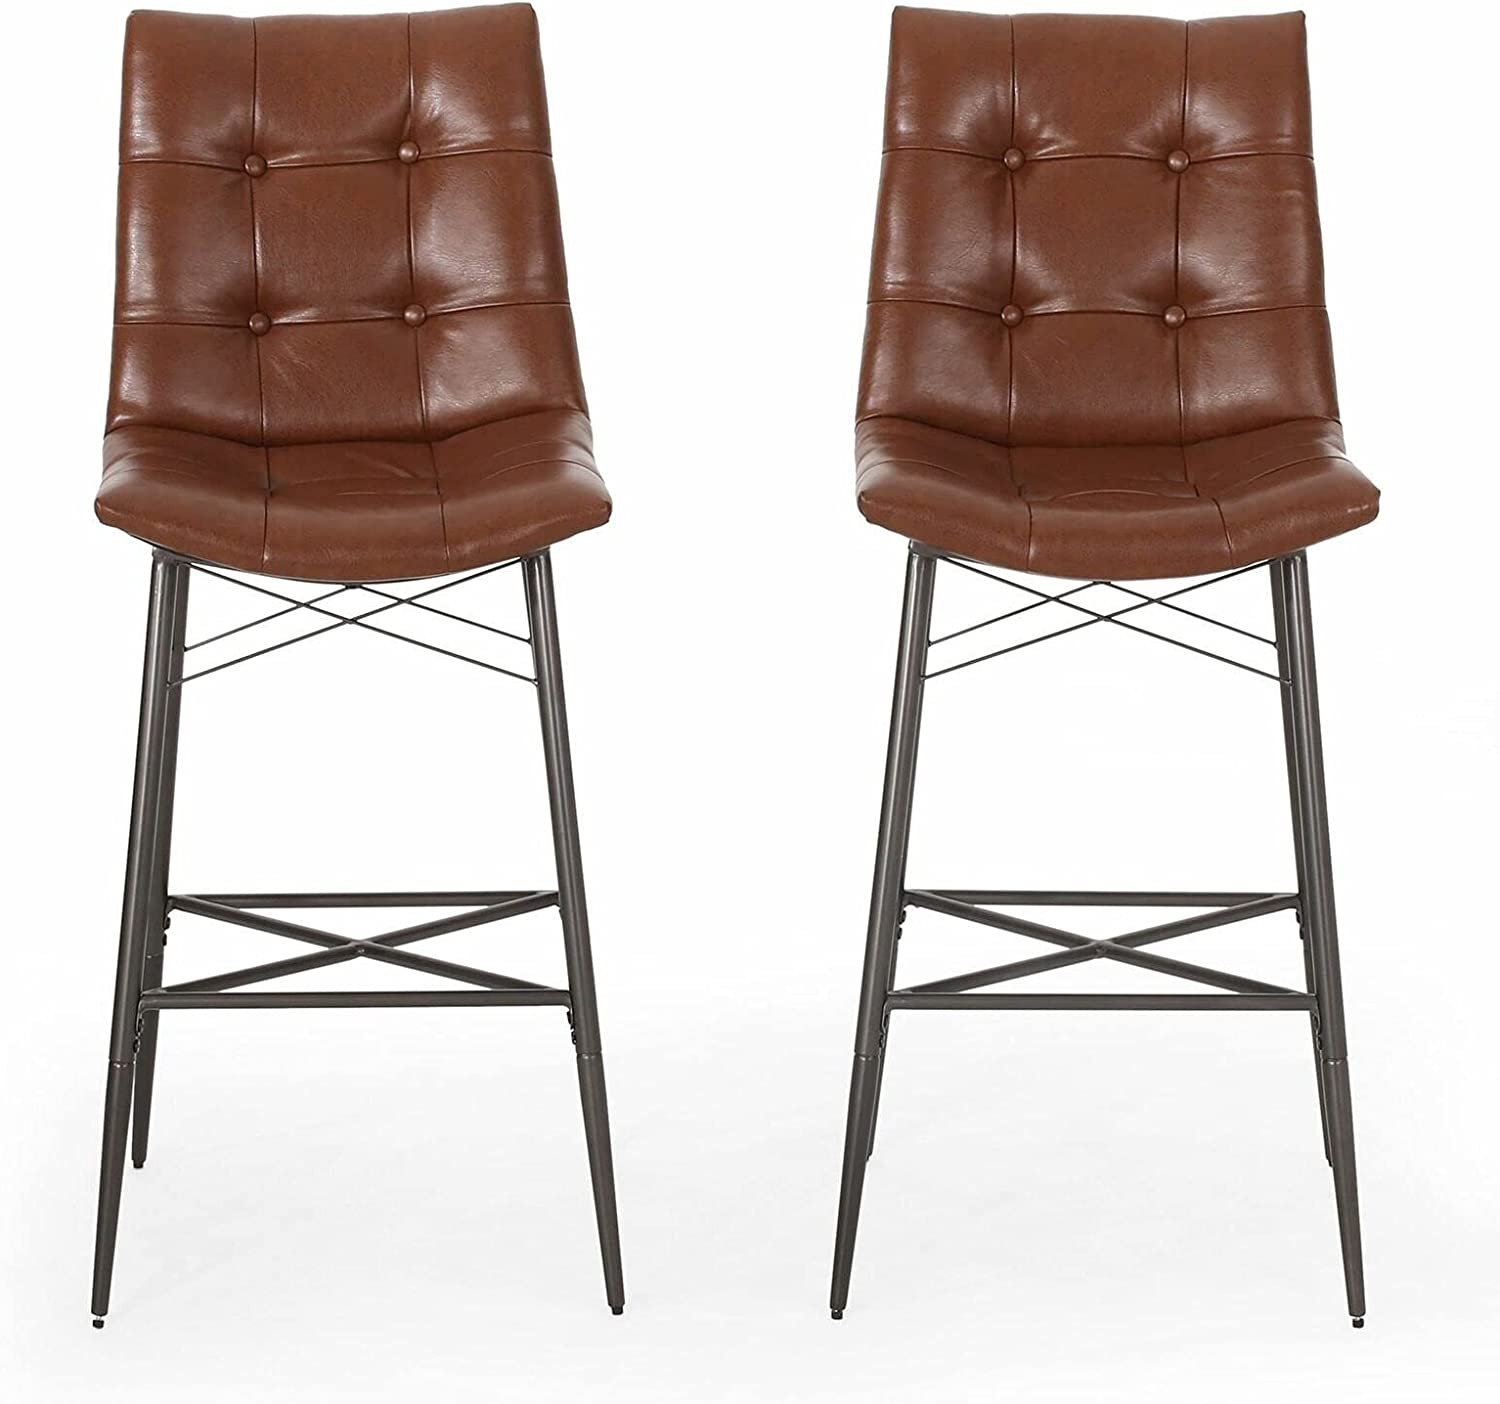 Contemporary Tufted Barstools Set of 2 Chair : Bar New item Max 88% OFF Color High